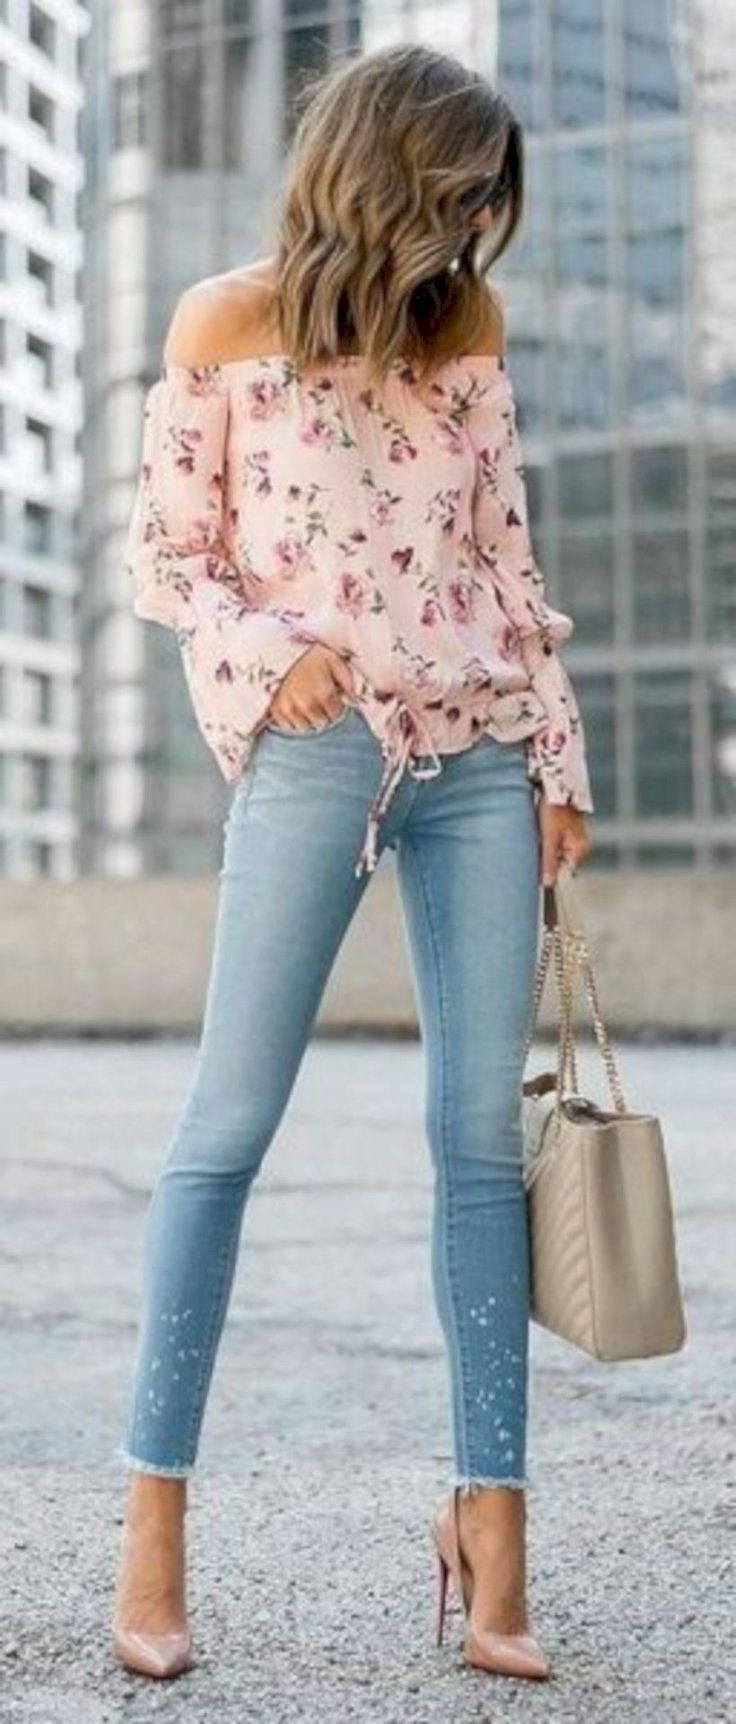 fine 34 Casual Chic Outfit Ideas for Summer https://attirepin.com/2018/02/22/34-casual-chic-outfit-ideas-summer/